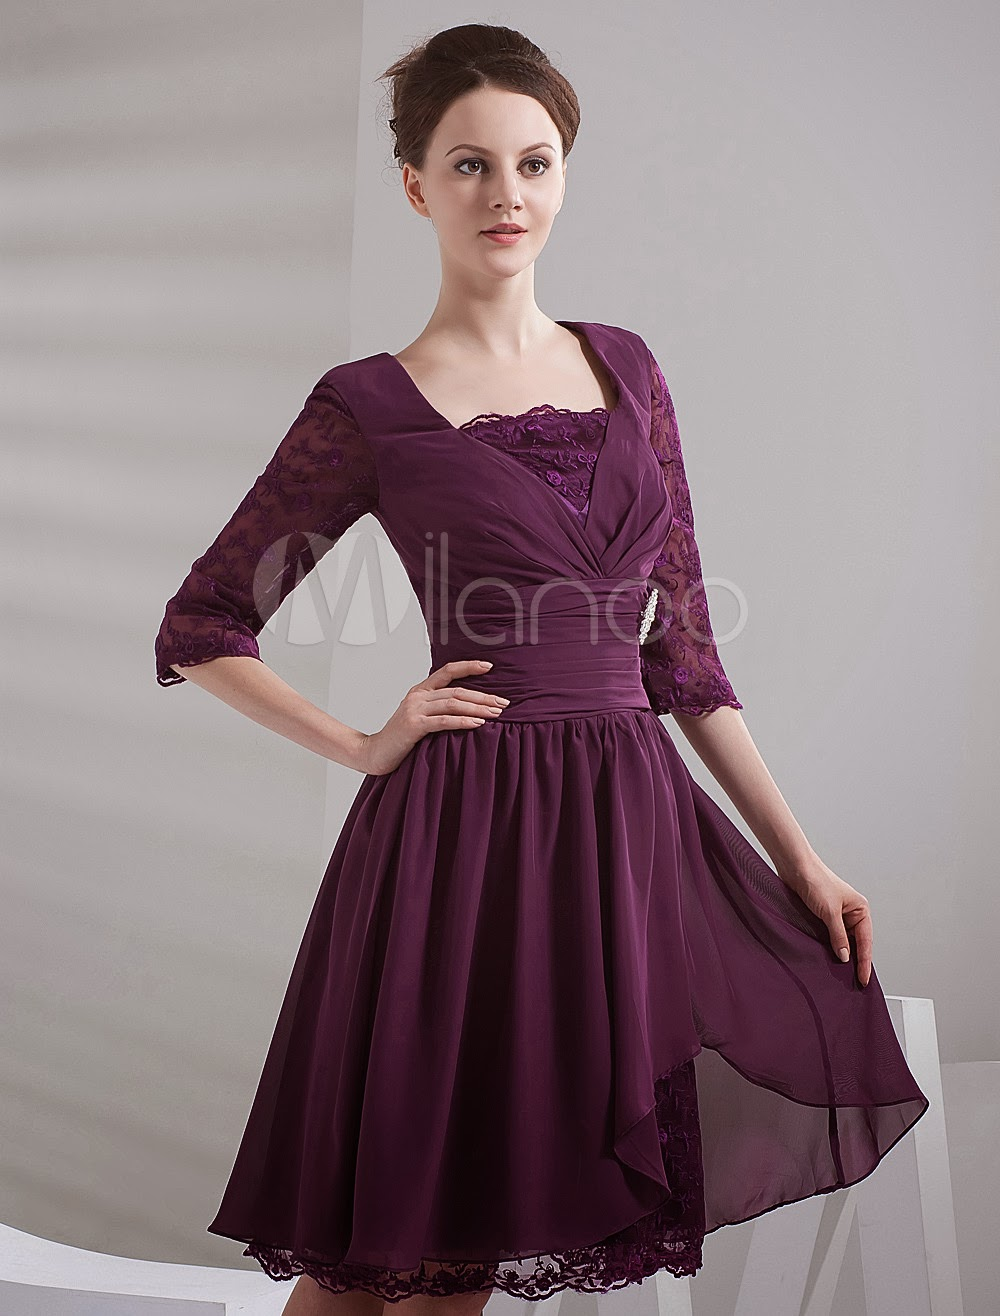 China Wholesale Clothes - Grape Square Neck Half Sleeves Knee Length Chiffon Prom Dresses